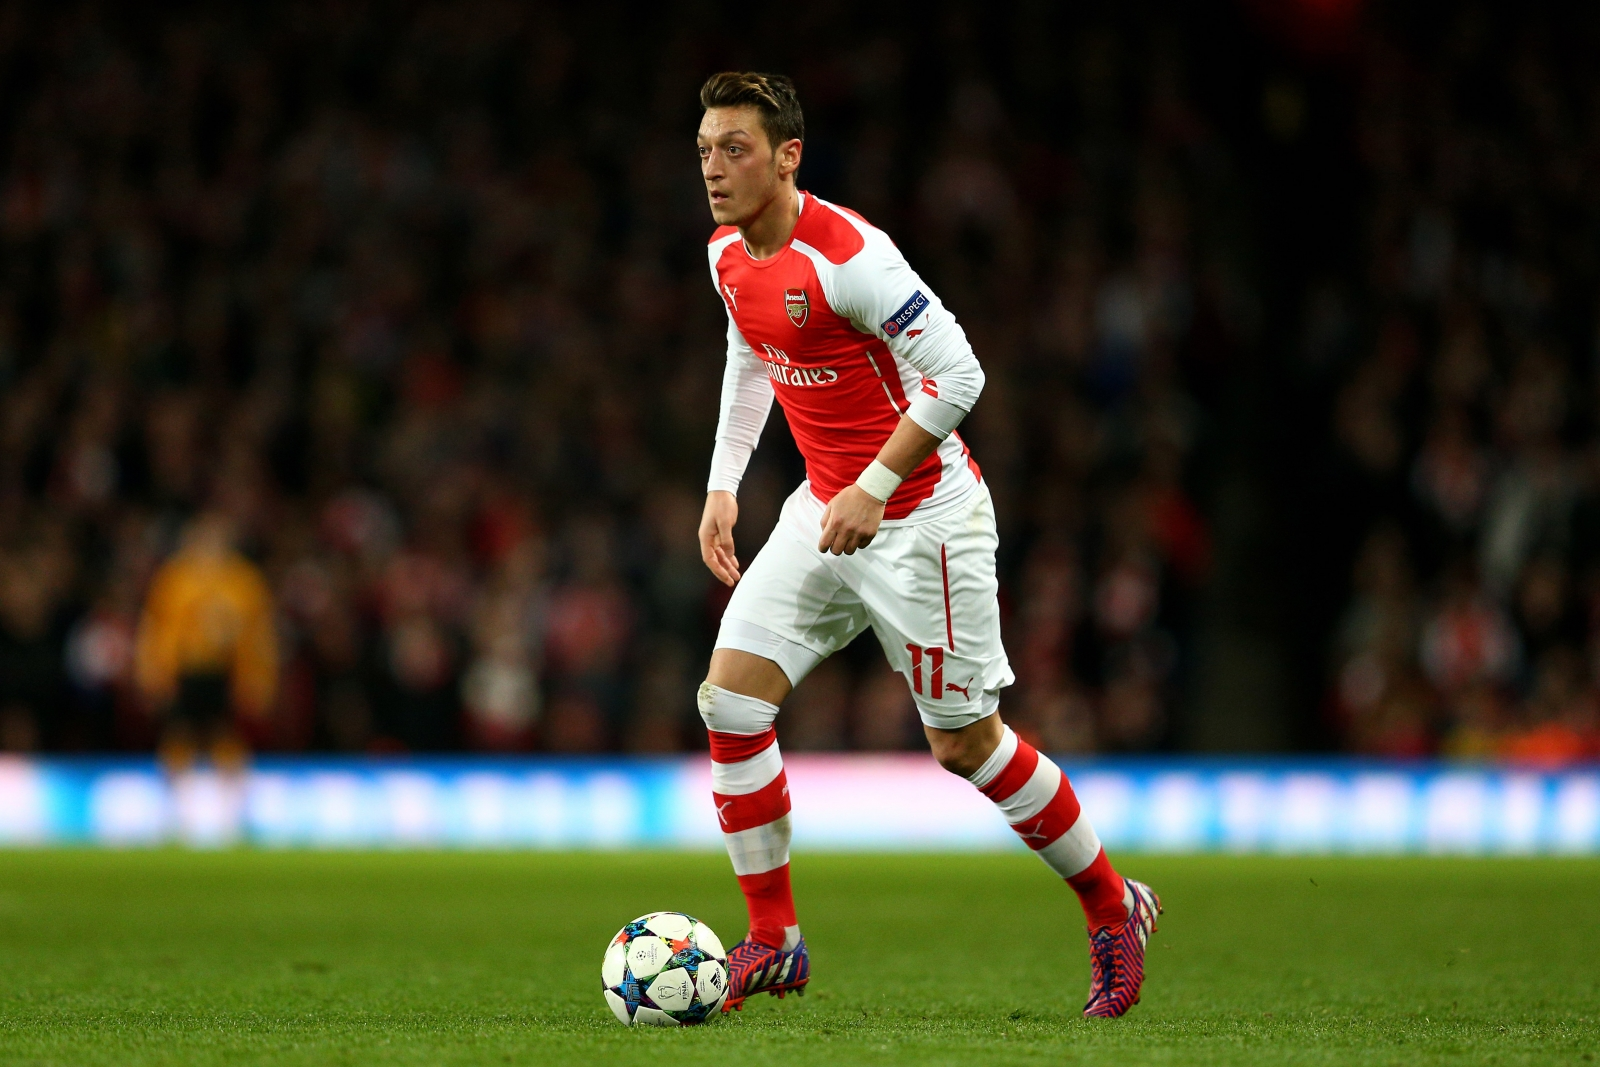 Bayern Munich vs Arsenal Philipp Lahm considers Mesut Ozil the